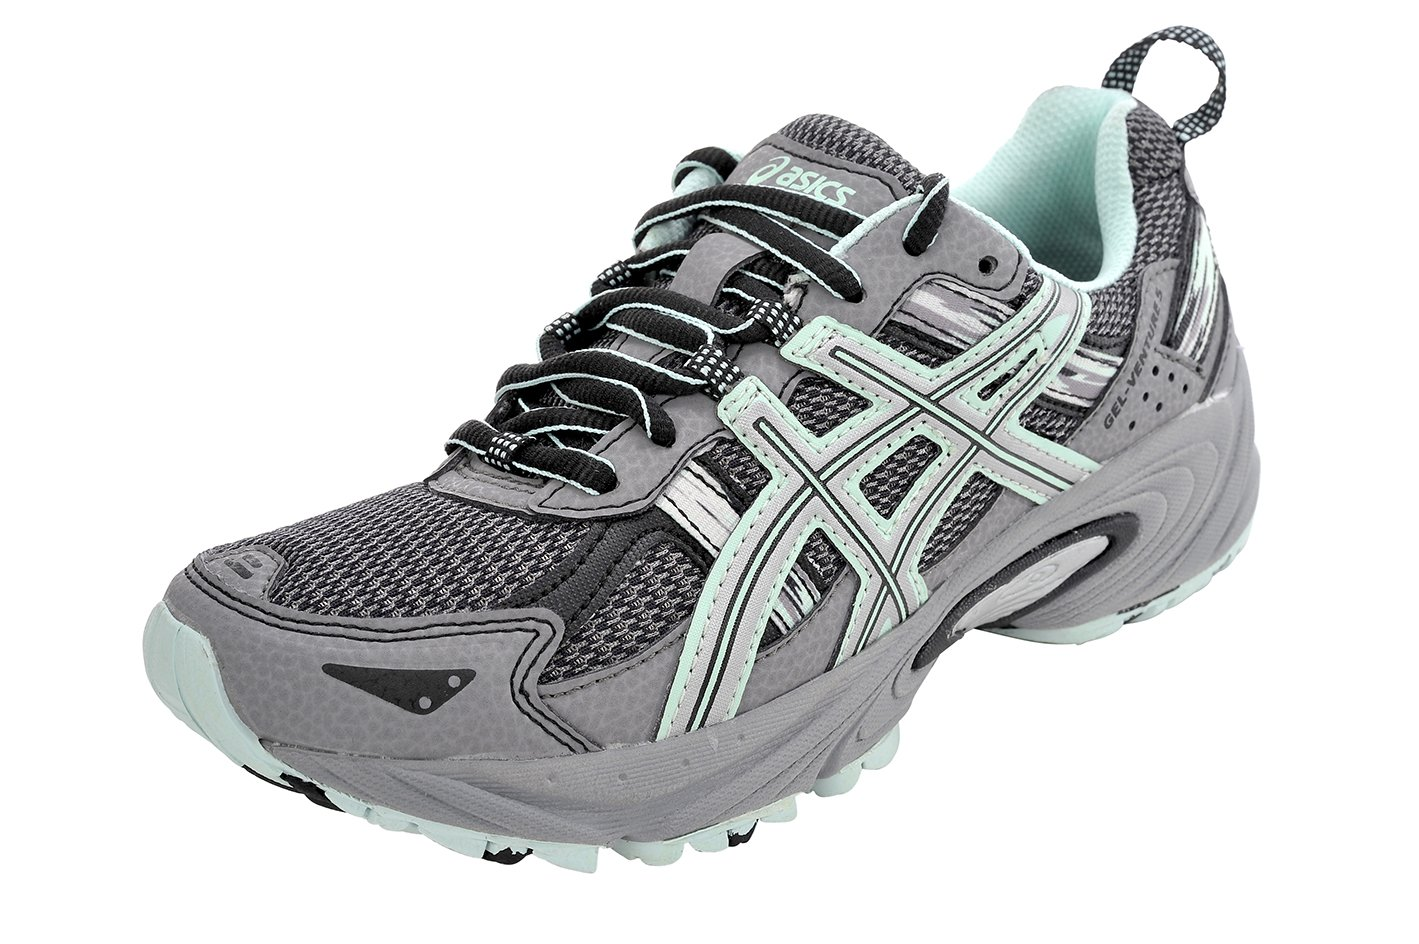 ASICS Shoe Women's GEL-Venture 5 Running Shoe ASICS B01H7T1BTK 7 B(M) US|Frost Gray/Silver/Soothing Sea 9226e8